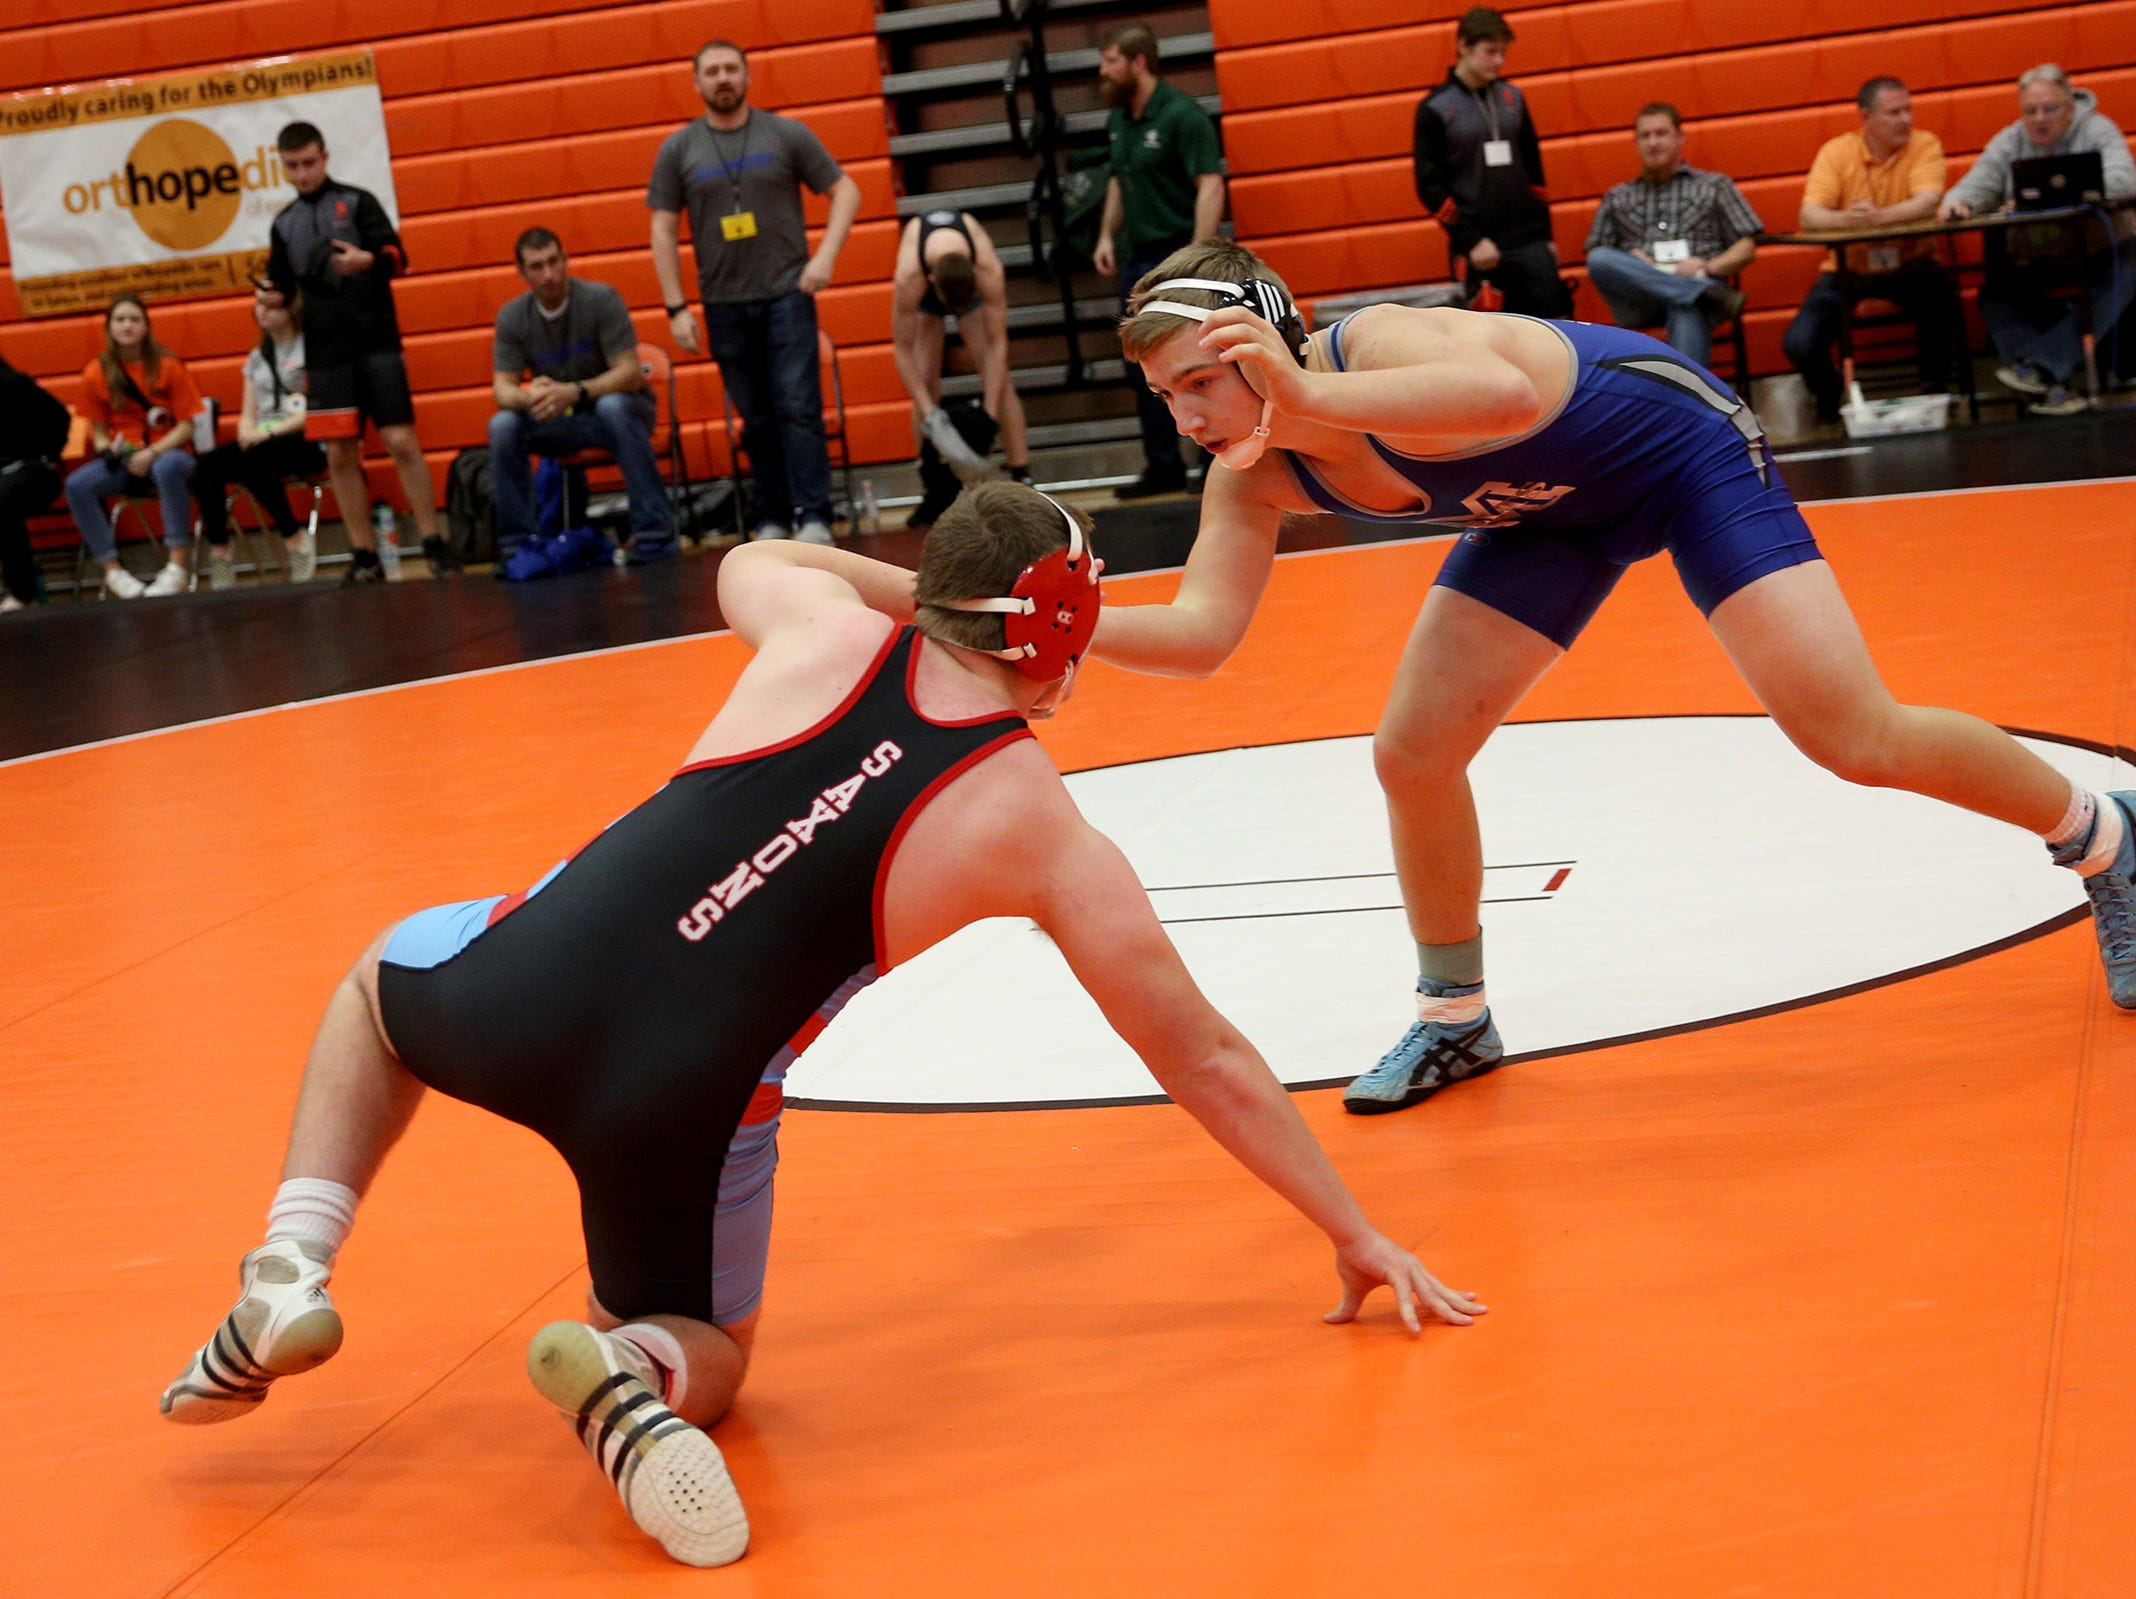 McNary's Ryan Bamford (right) takes on South Salem's Joel Bird in the 170 pound weight class during the Mountain Valley Conference district wrestling tournament at Sprague High School in Salem on Friday, Feb. 15, 2019.